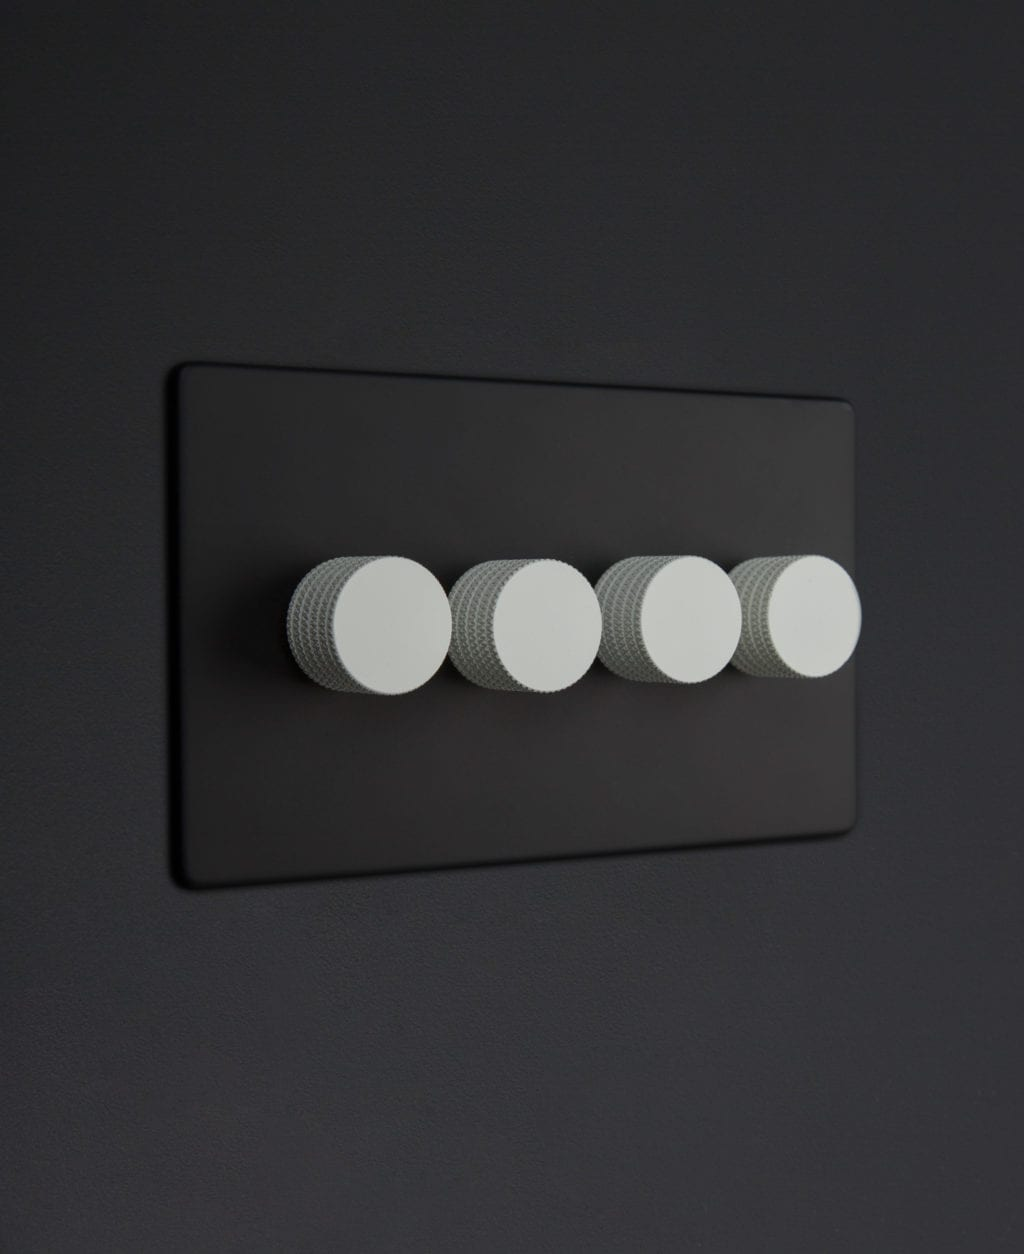 Black four gang dimmer switch with white knobs on black background